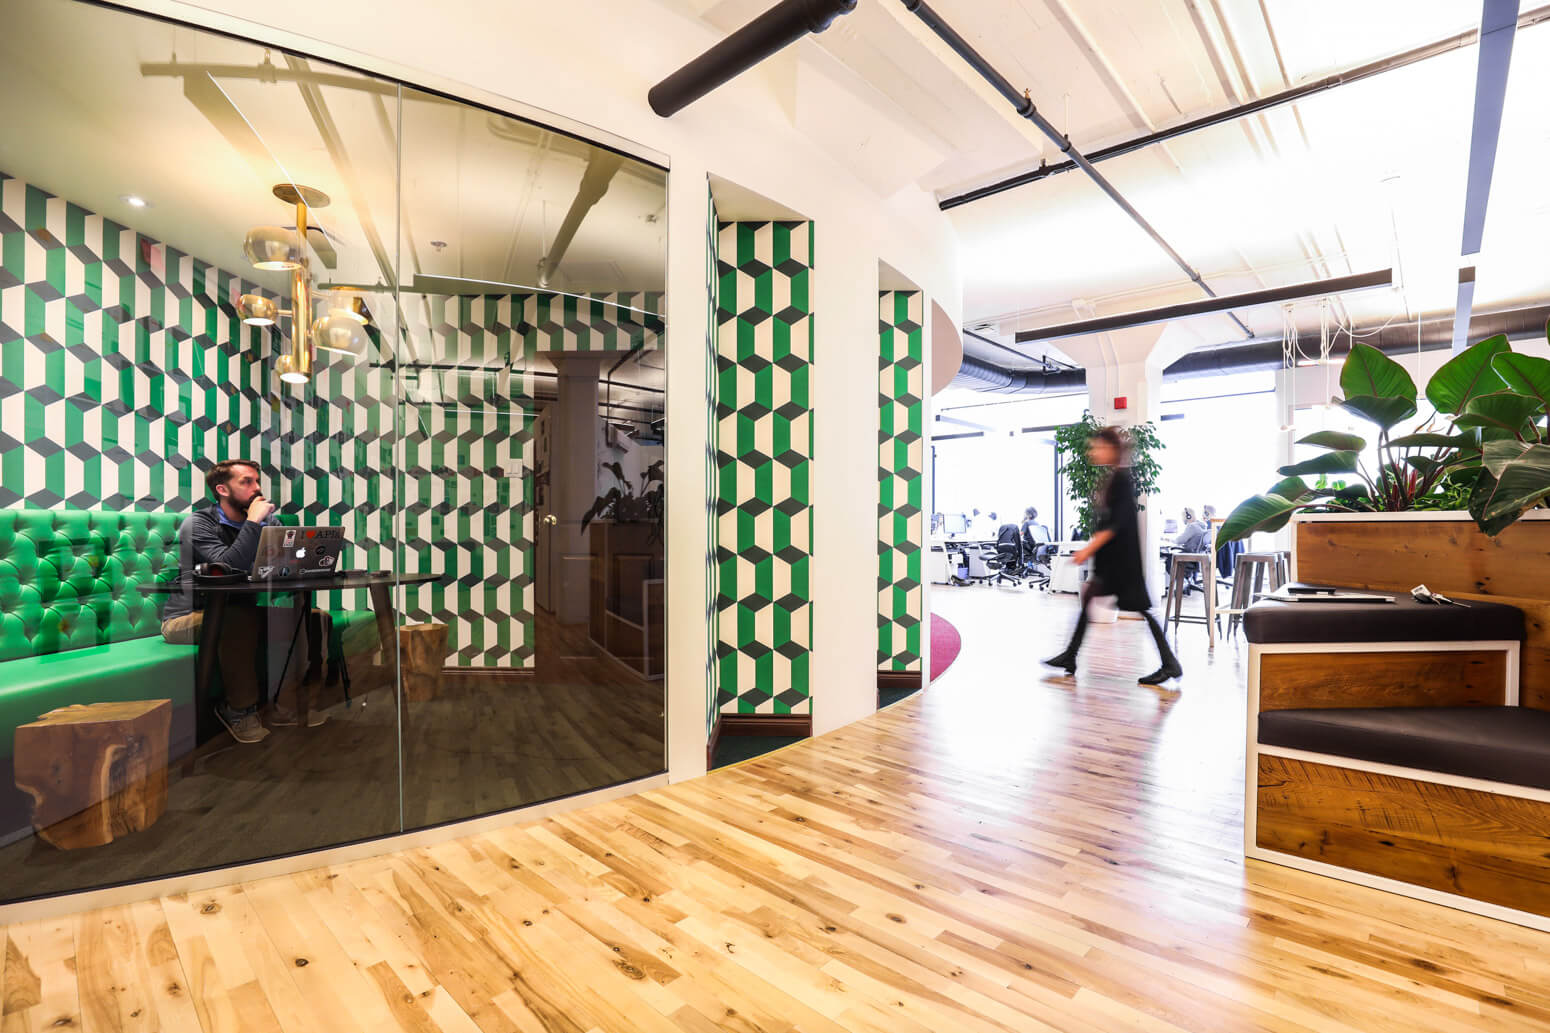 Shutterstock Montreal Office Killer Spaces-9